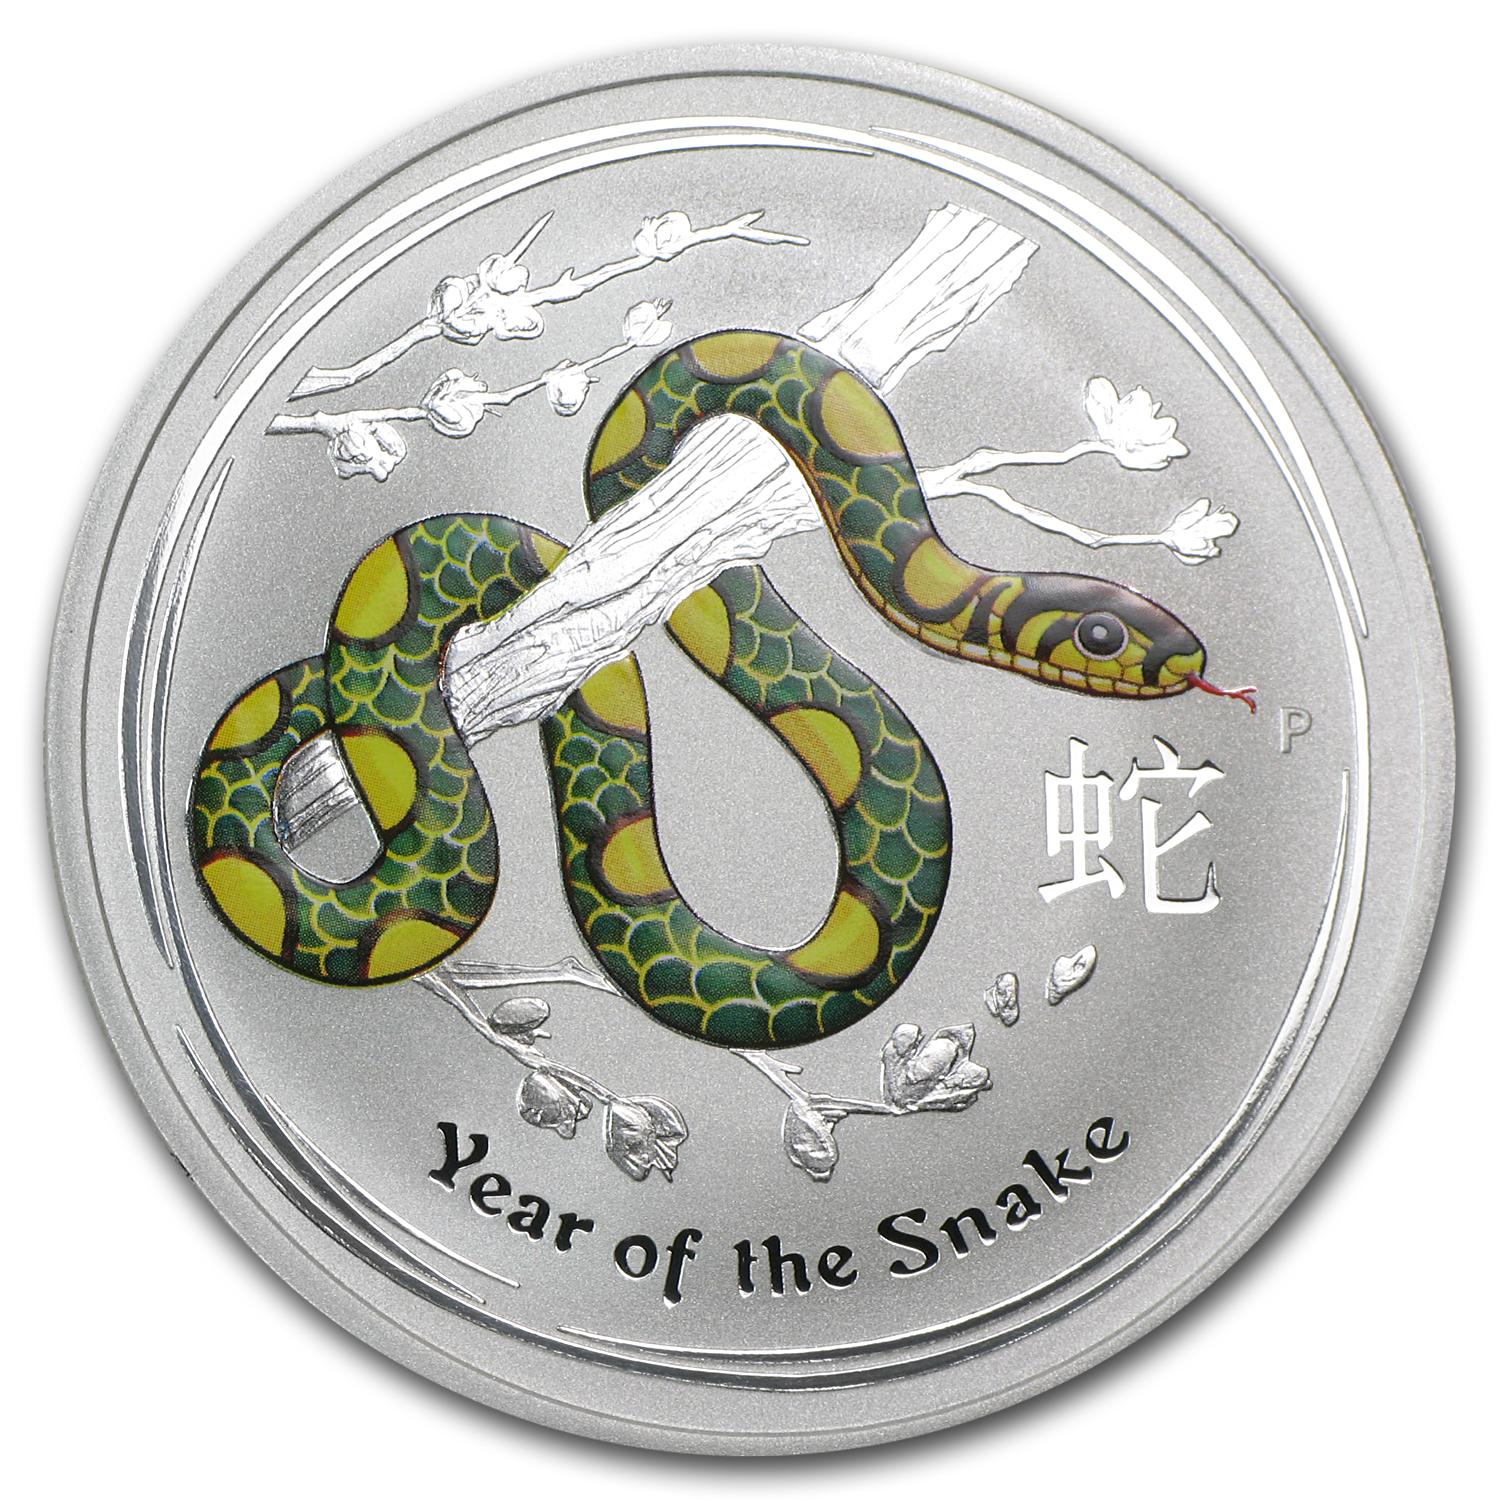 2013 1 oz Silver Year of the Snake Berlin World Money Fair Coin